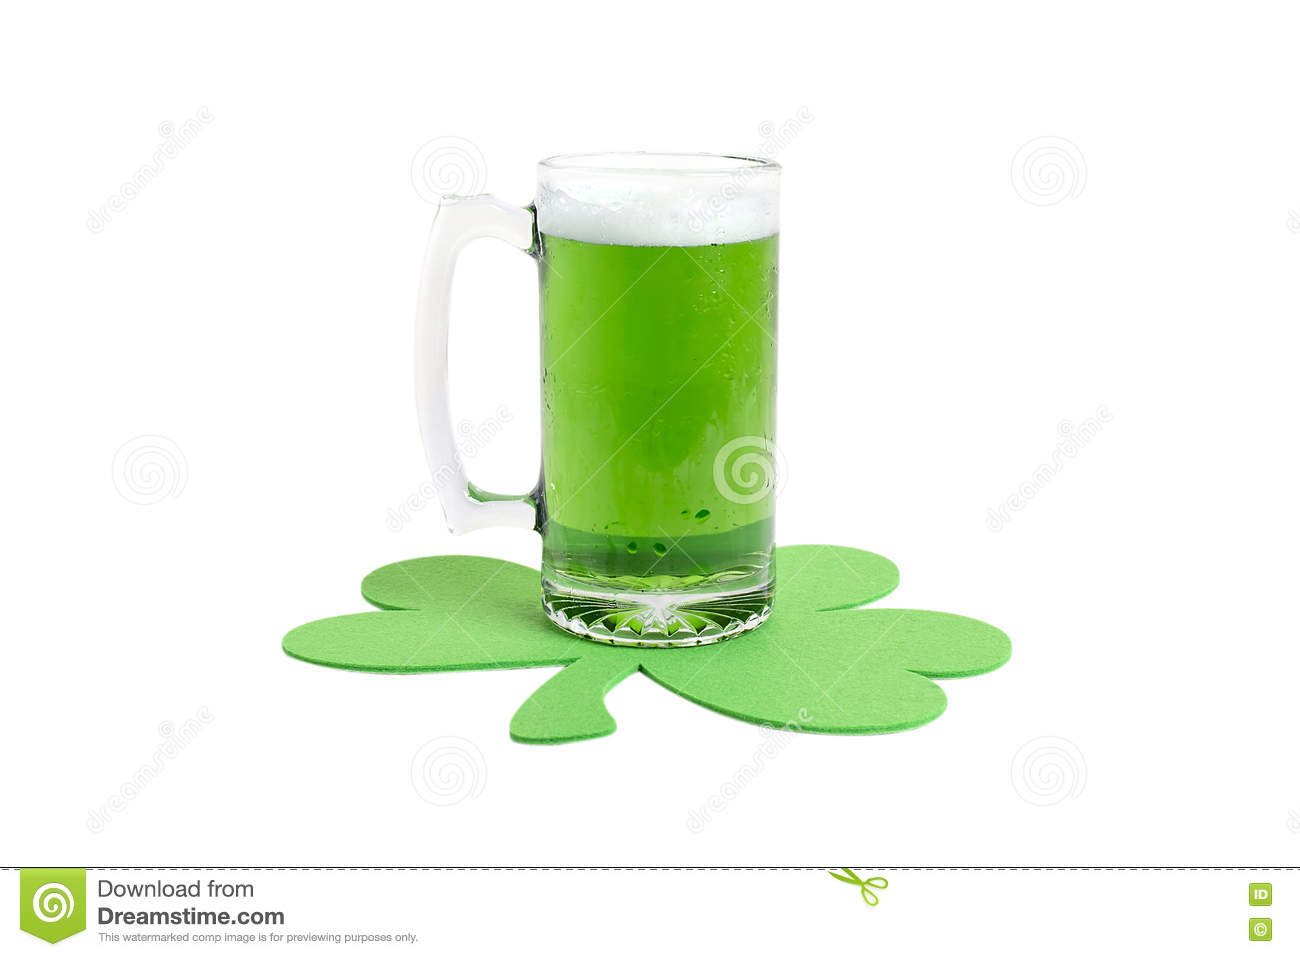 St paddys day drink and fuck